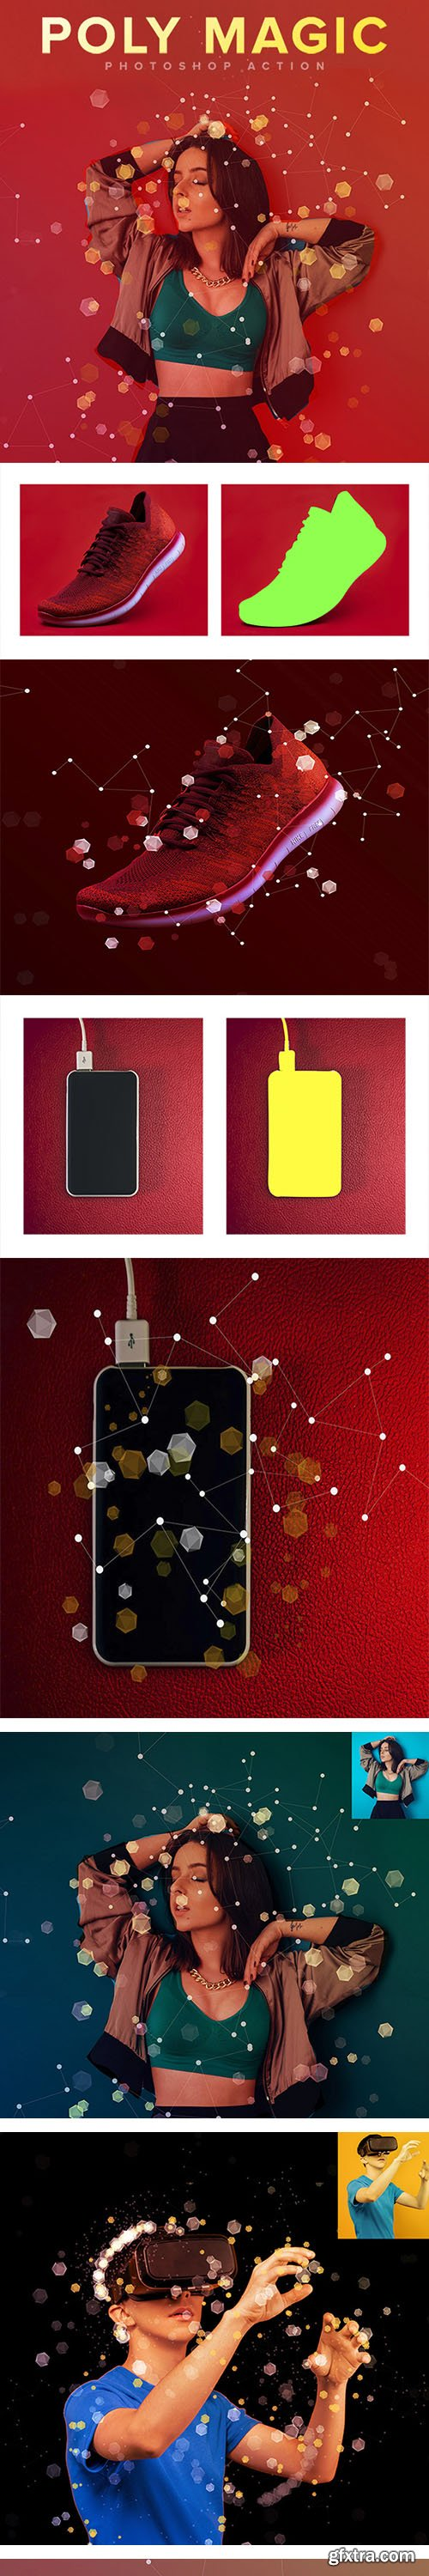 GraphicRiver - Poly Magic Photoshop Action 27706666